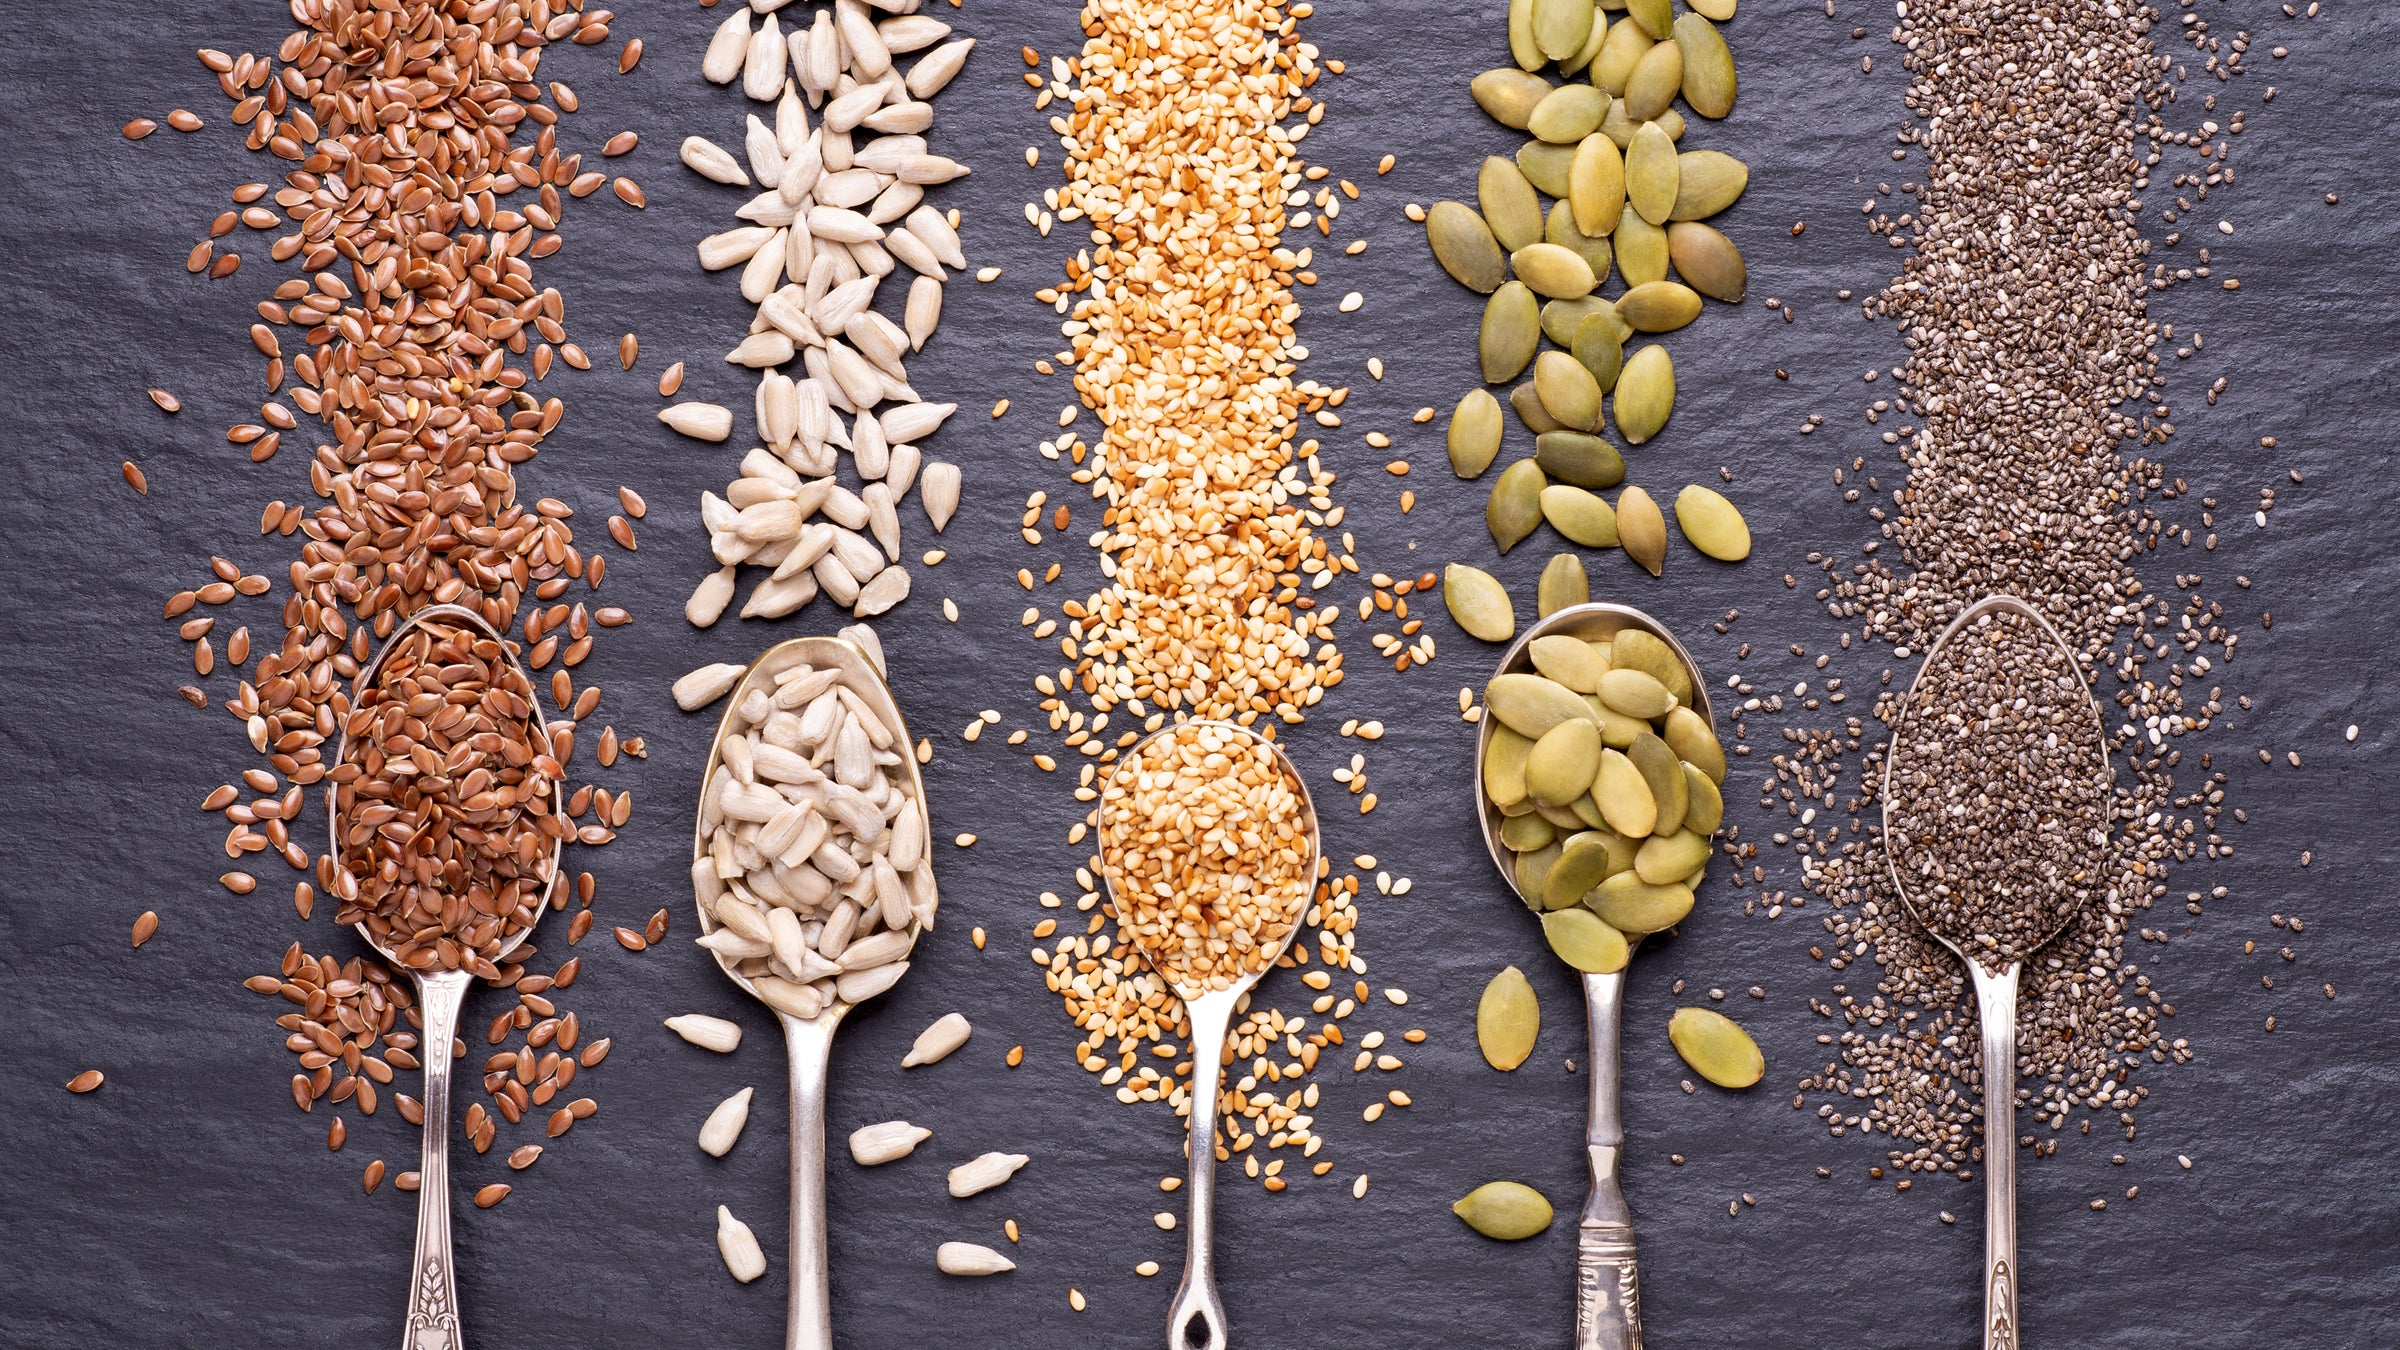 The Case for Eating More Seeds